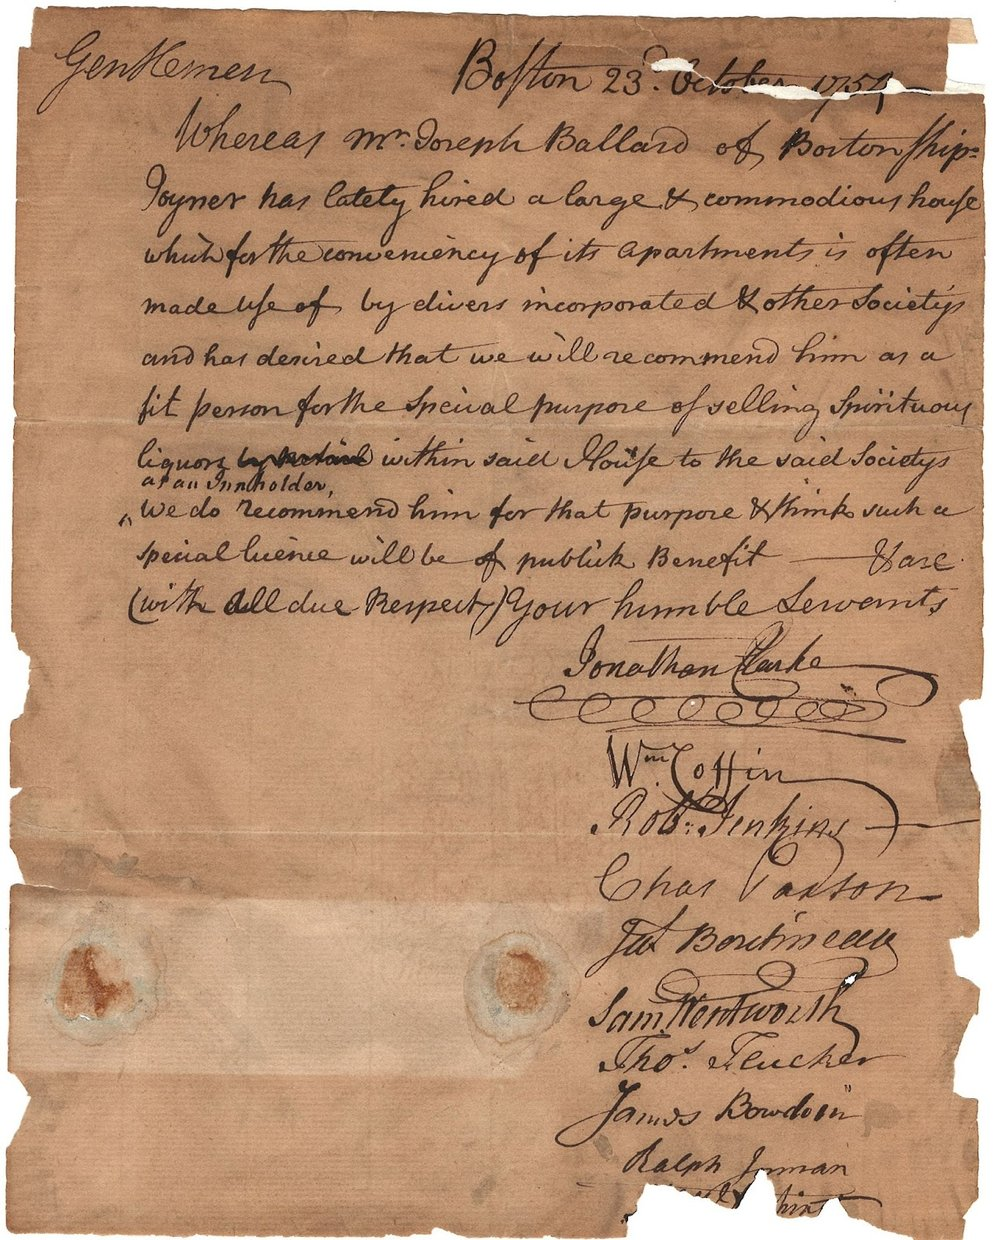 Petition from Joseph Ballard for a liquorlicense, 1754 (MS0119/DC1137)